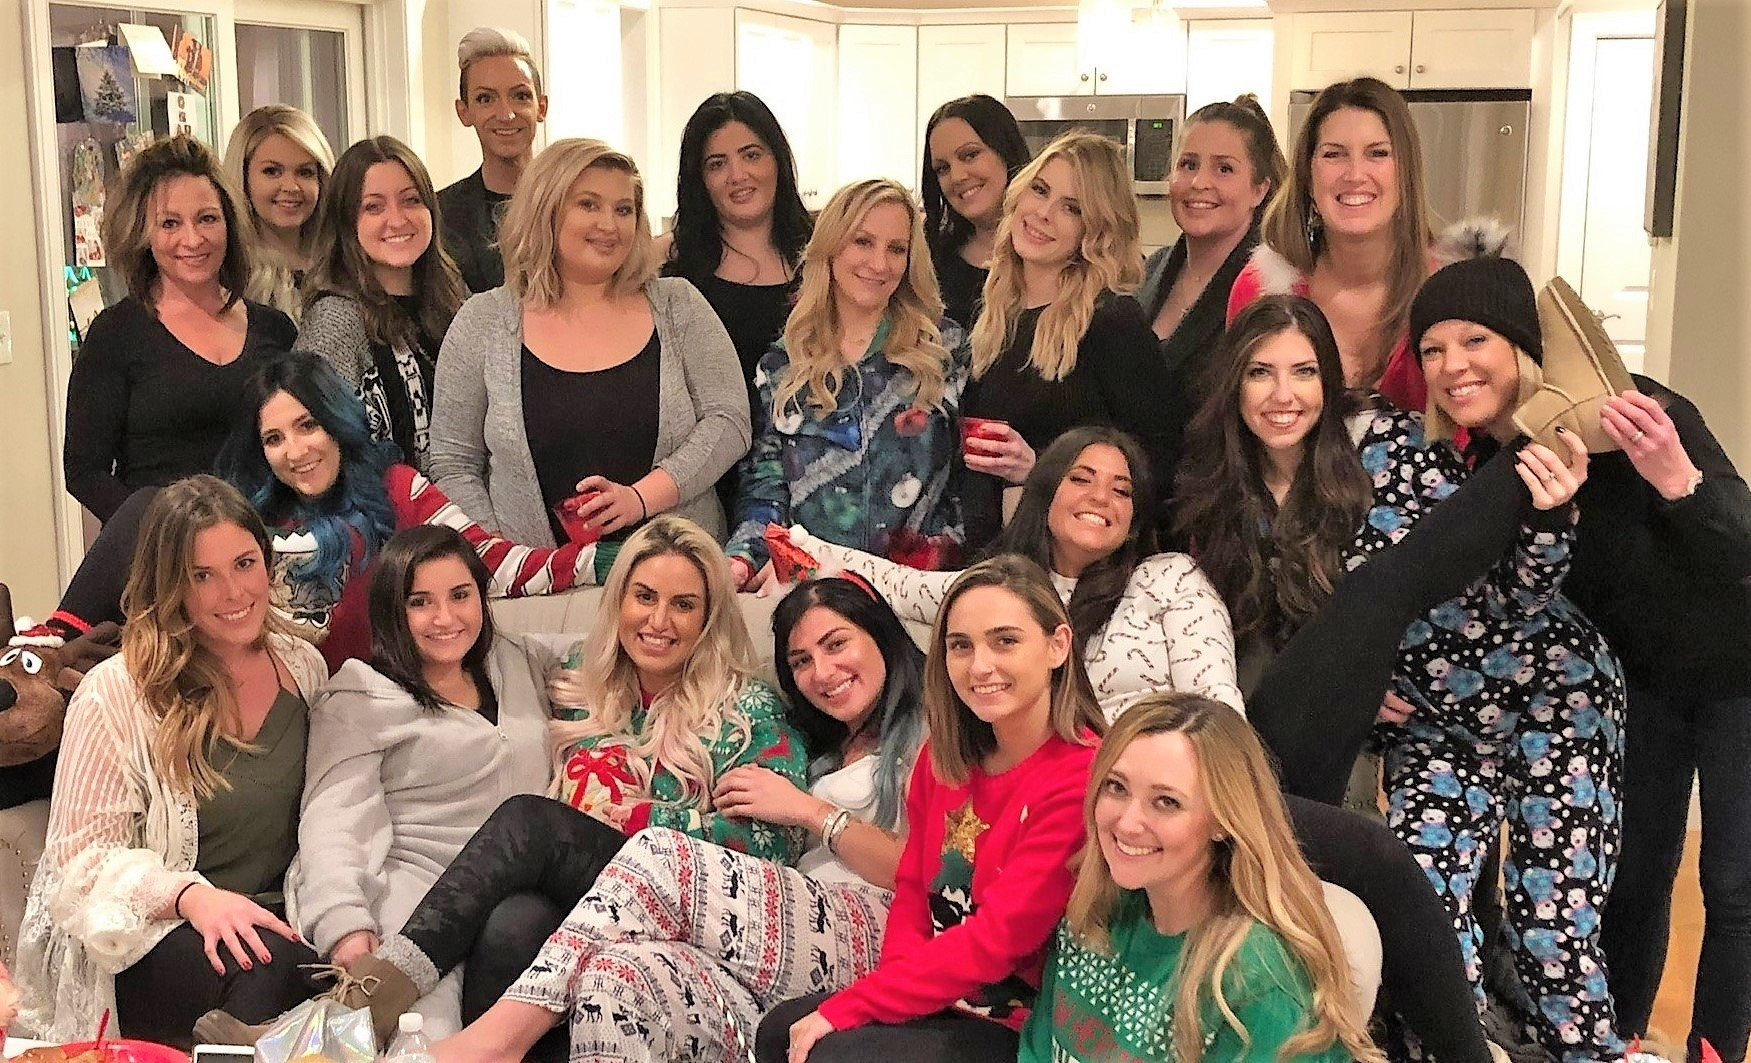 The lives of Amanda Barror (center, bottom) and her happy tribe at the two Aqua Salon and Spas have changed for the better thanks to online booking. Now there's more time for bonding experiences like a holiday pajama party!